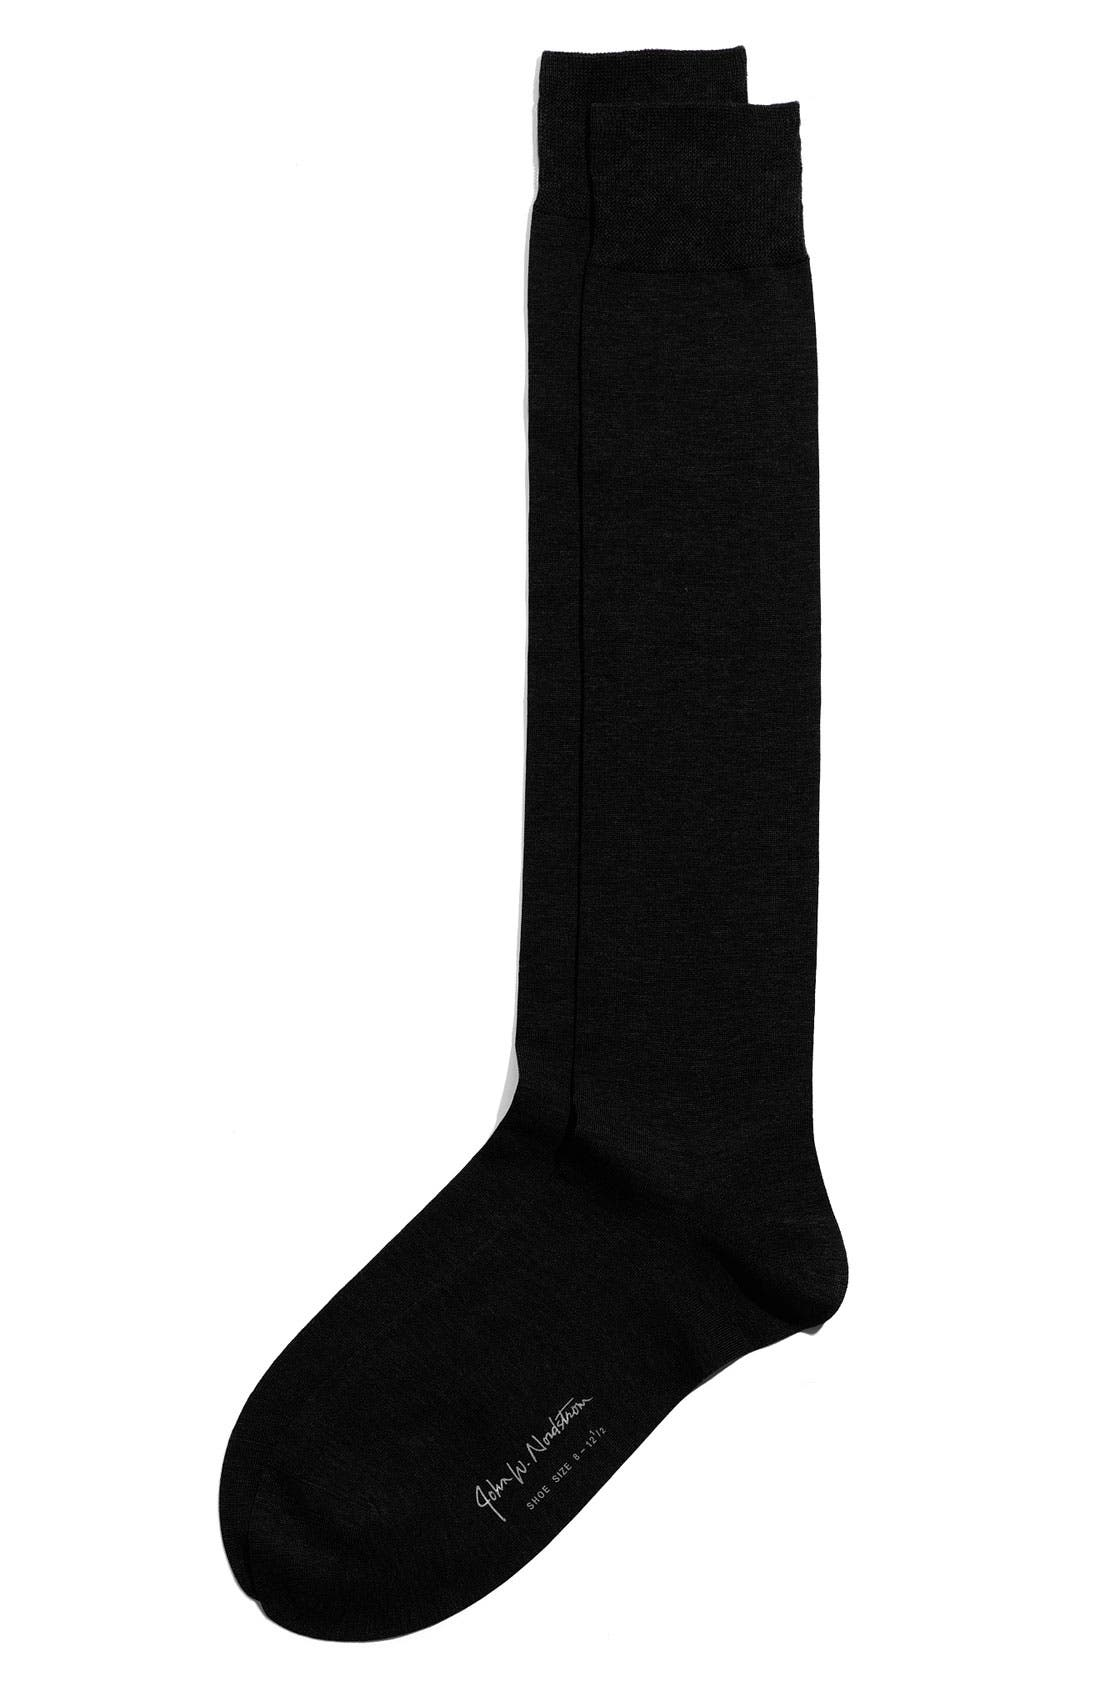 Over the Calf Egyptian Cotton Blend Socks,                             Main thumbnail 1, color,                             001